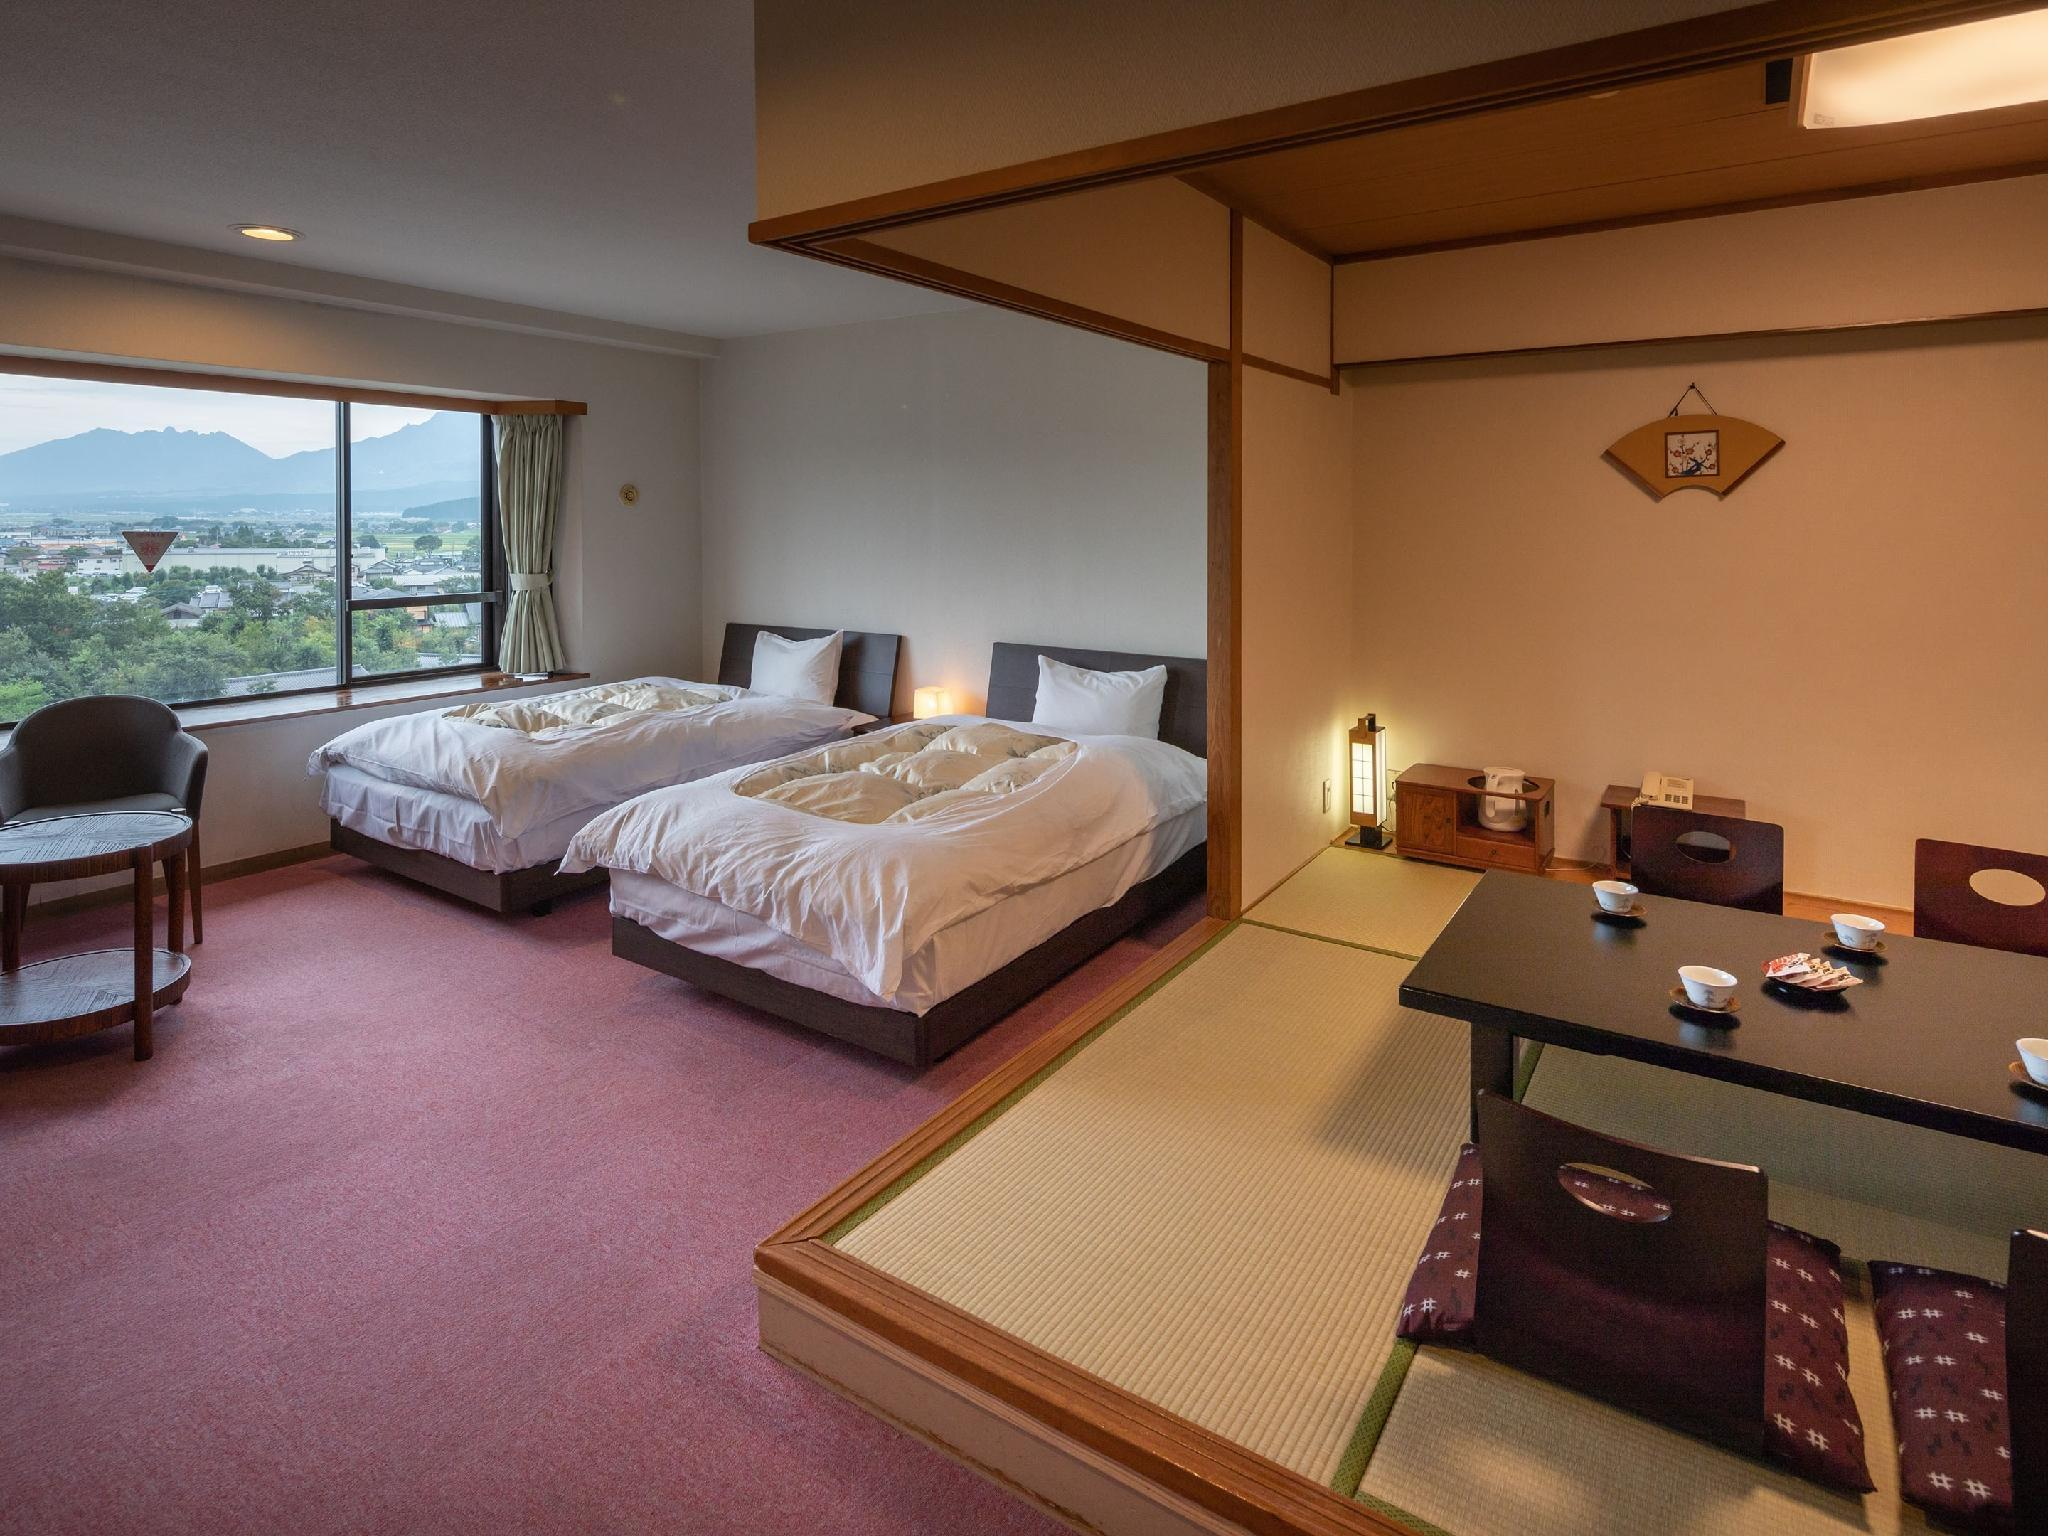 다다미 침대 객실(1번관 WADAYA/다다미 객실+트윈베드) (Japanese/Western-style Room (Japanese-style Room + Twin Bed, Wadaya Type, Ichibankan Building))